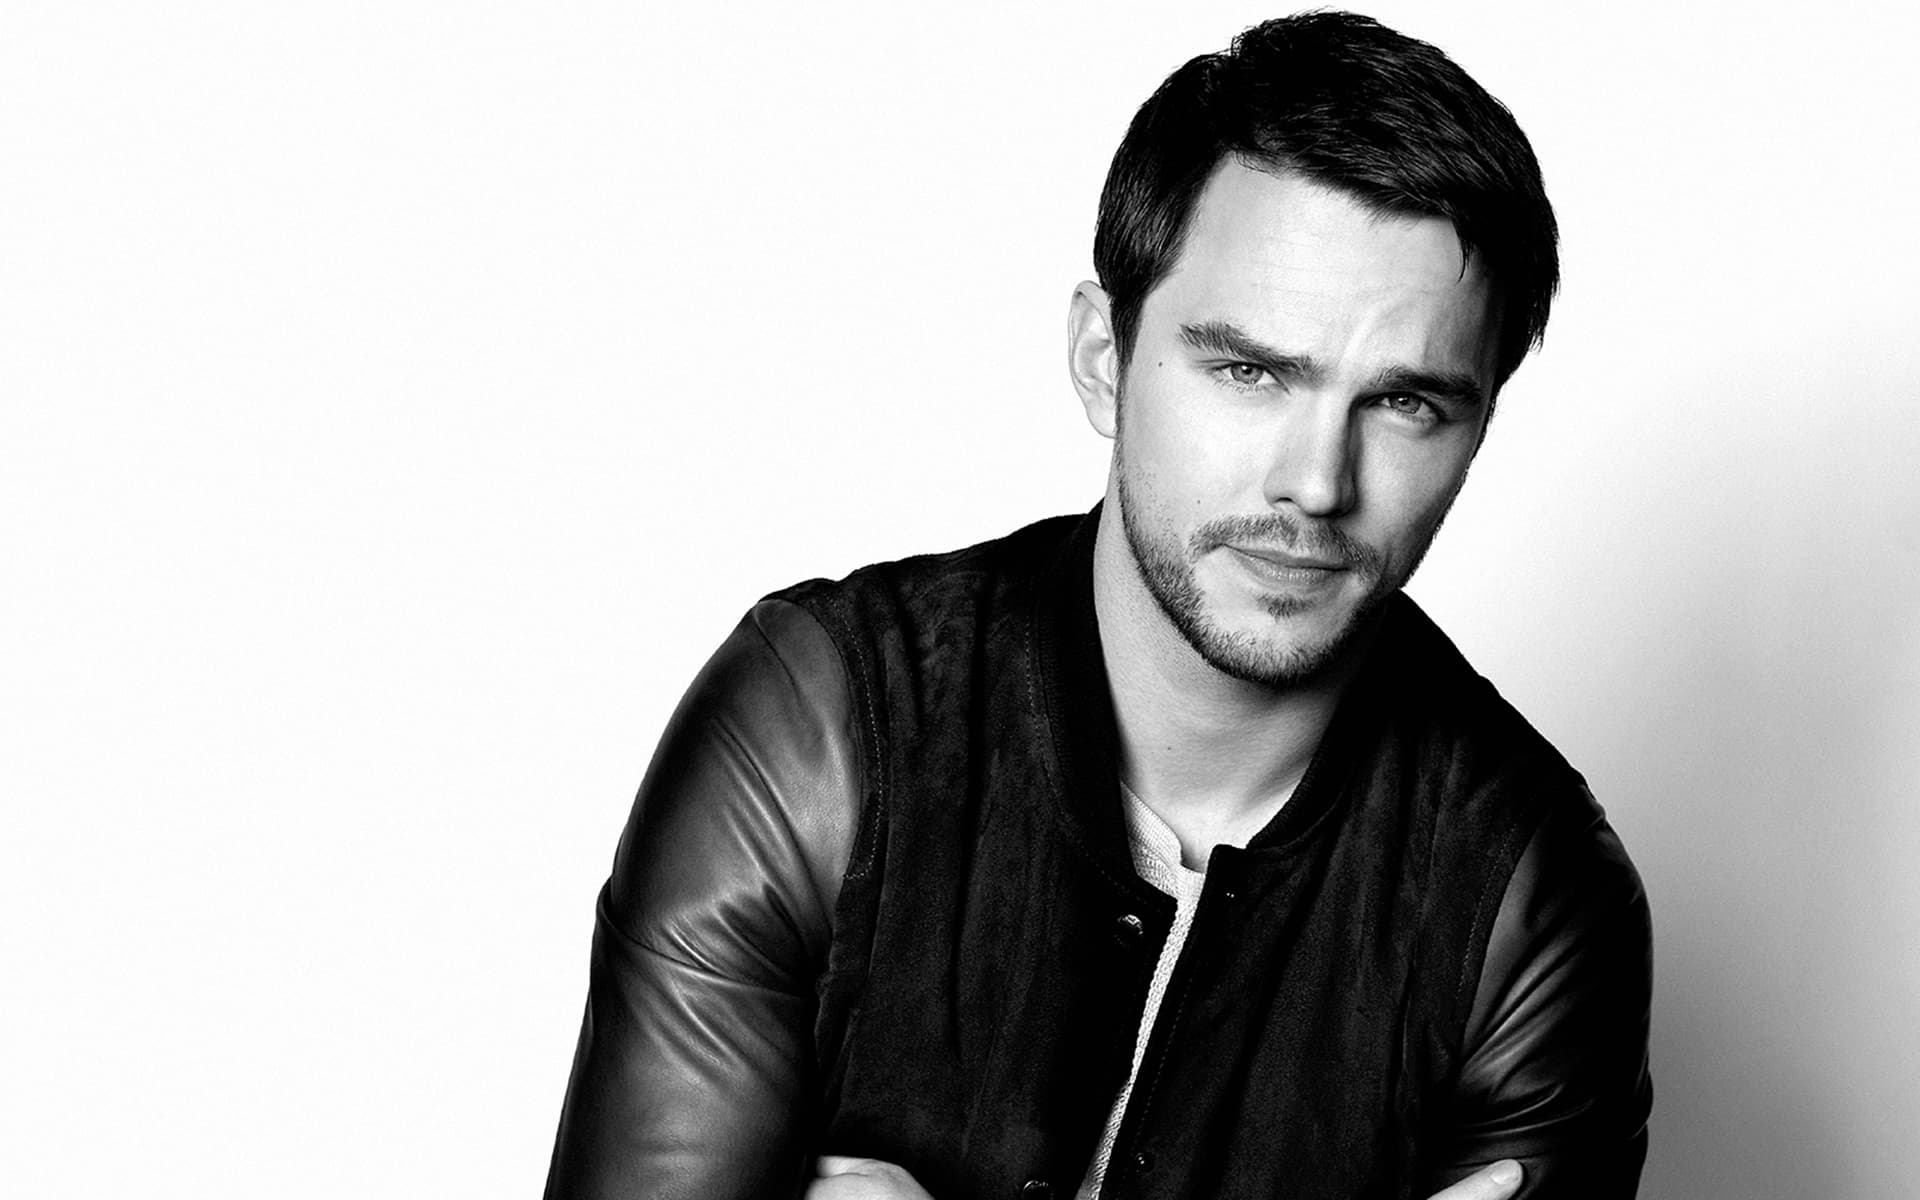 nicholas hoult wallpaper background - photo #23